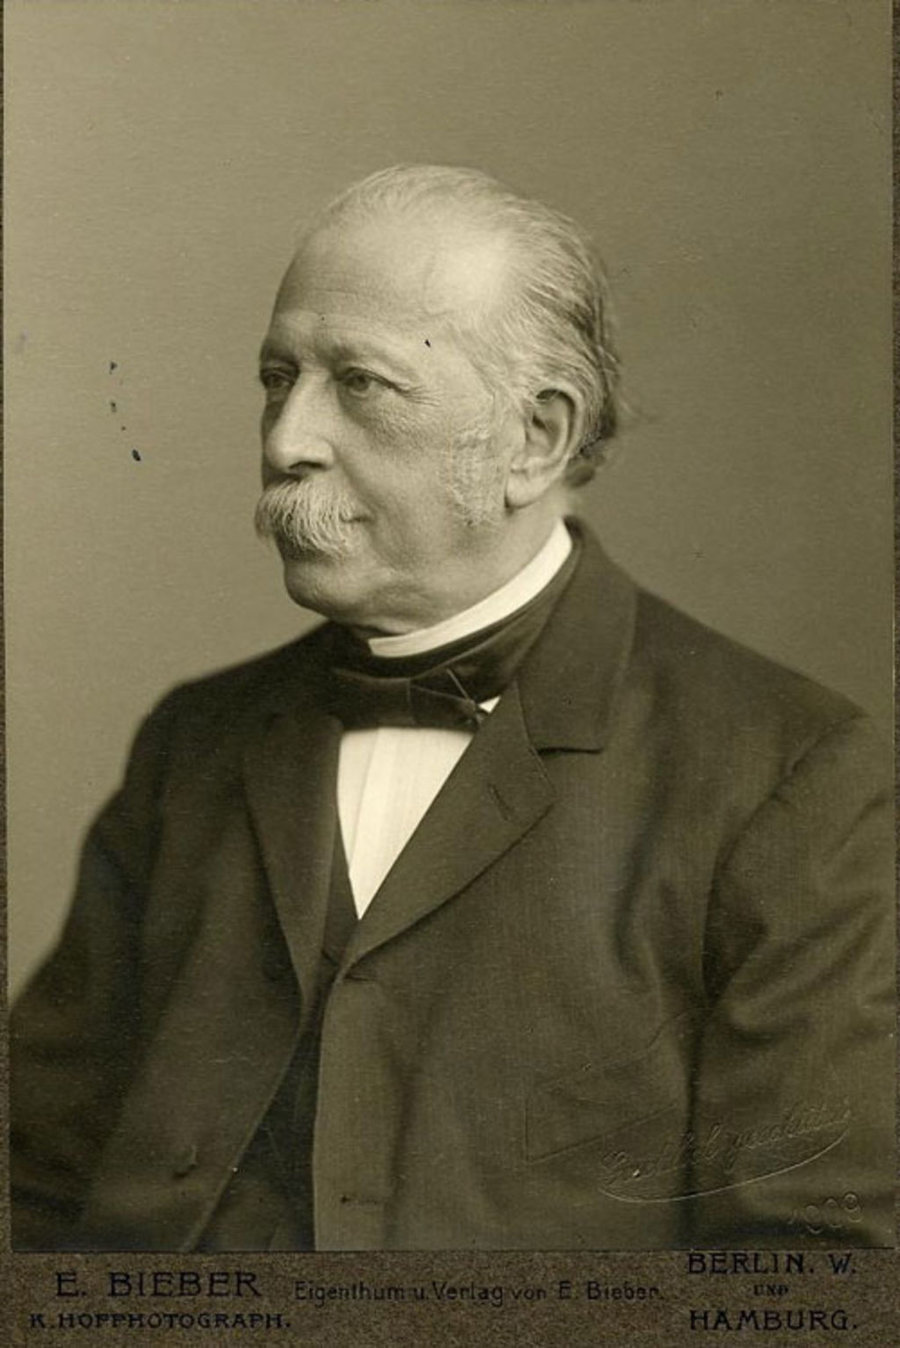 Foto: Emil Bieber Copyright: Klaus Niermann, Hamburg Berlin, 1894 © Deutsches Historisches Museum, Berlin Inv.-Nr.: Ph 2005/53